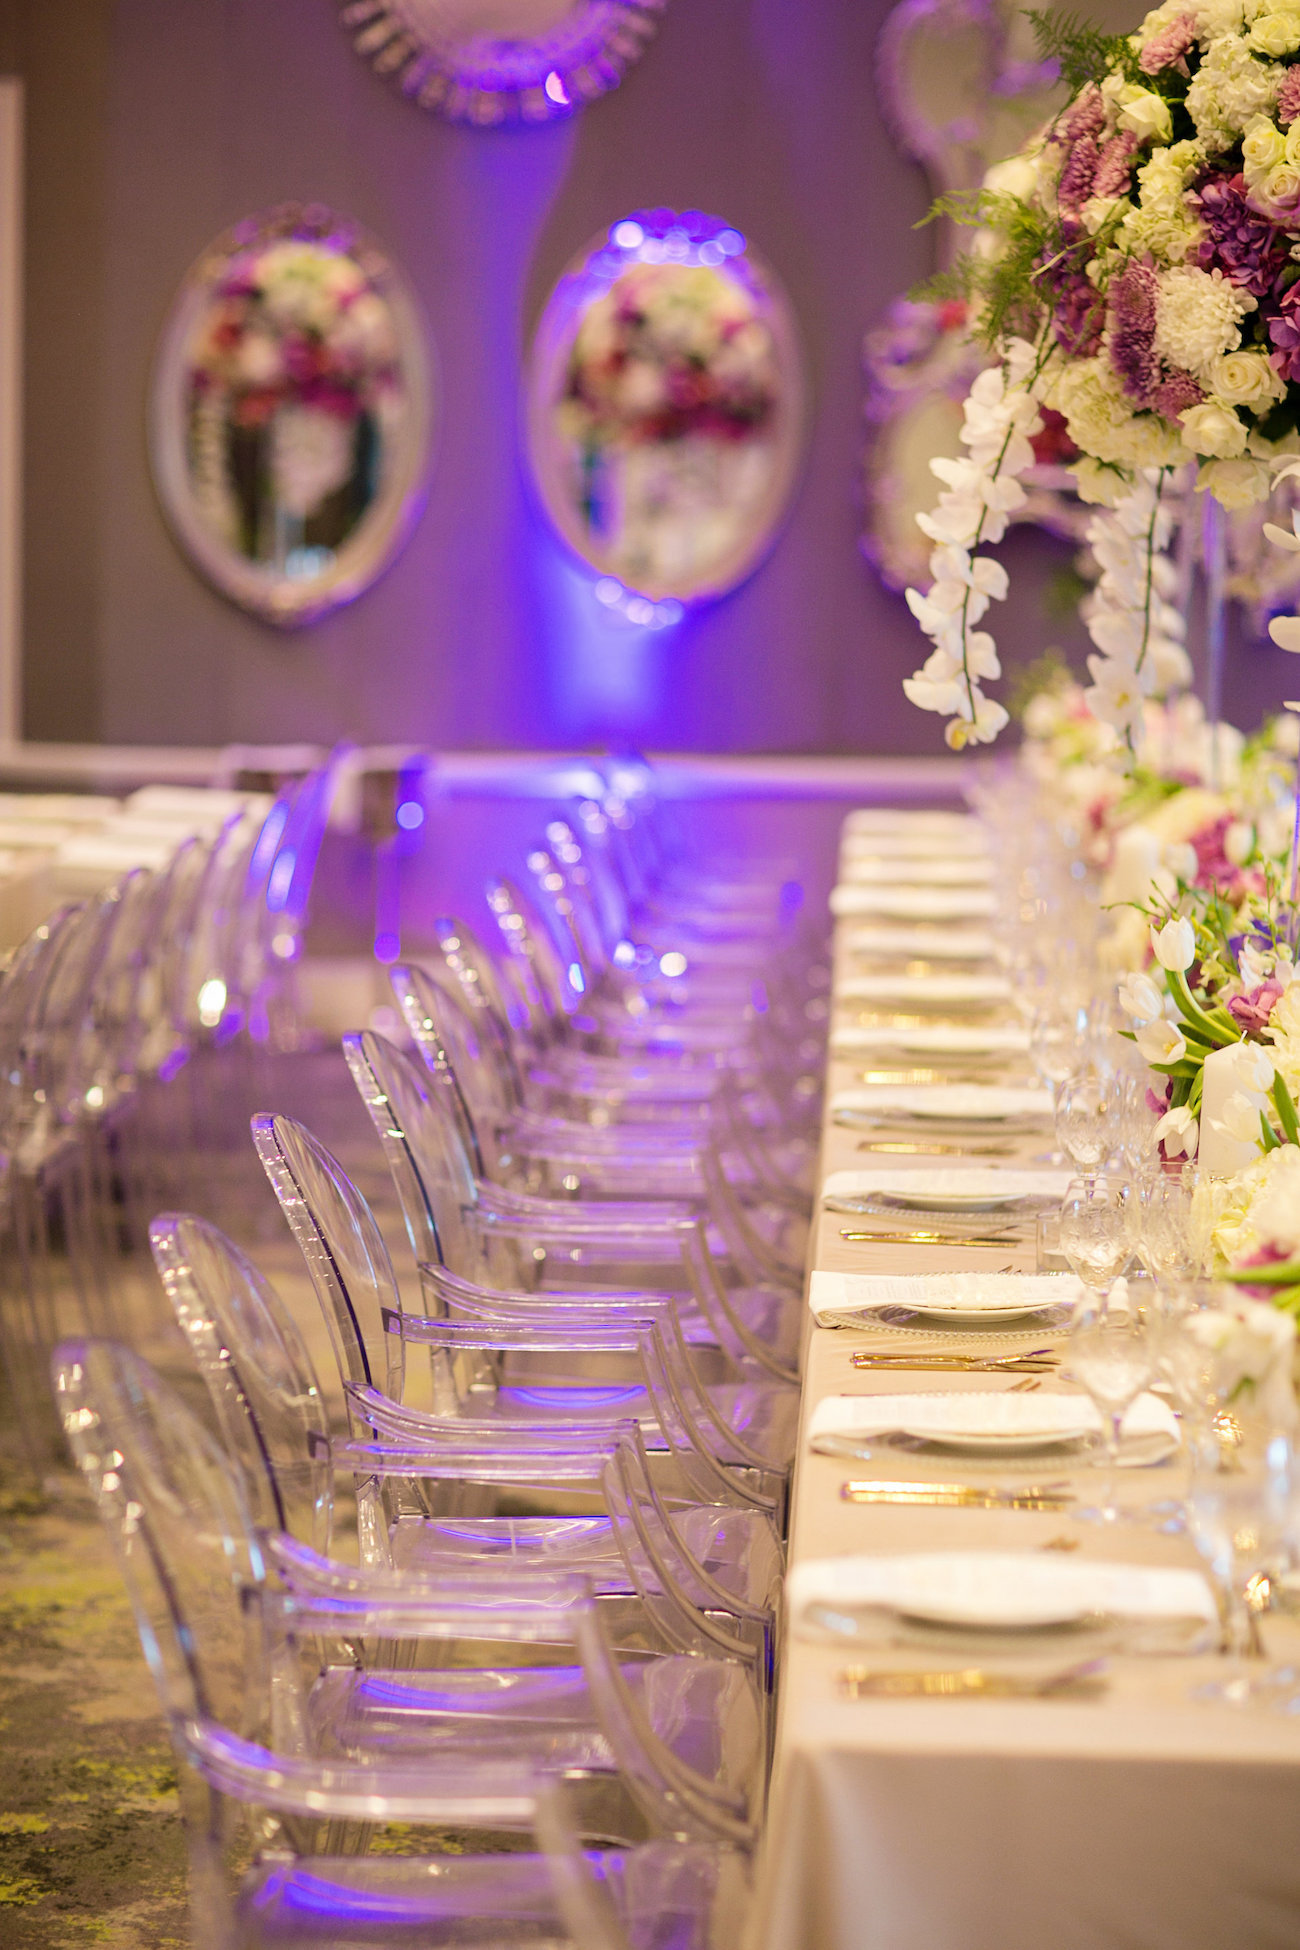 Luxurious Floral Wedding Tablescape | Credit: Tyme Photography & Wedding Concepts